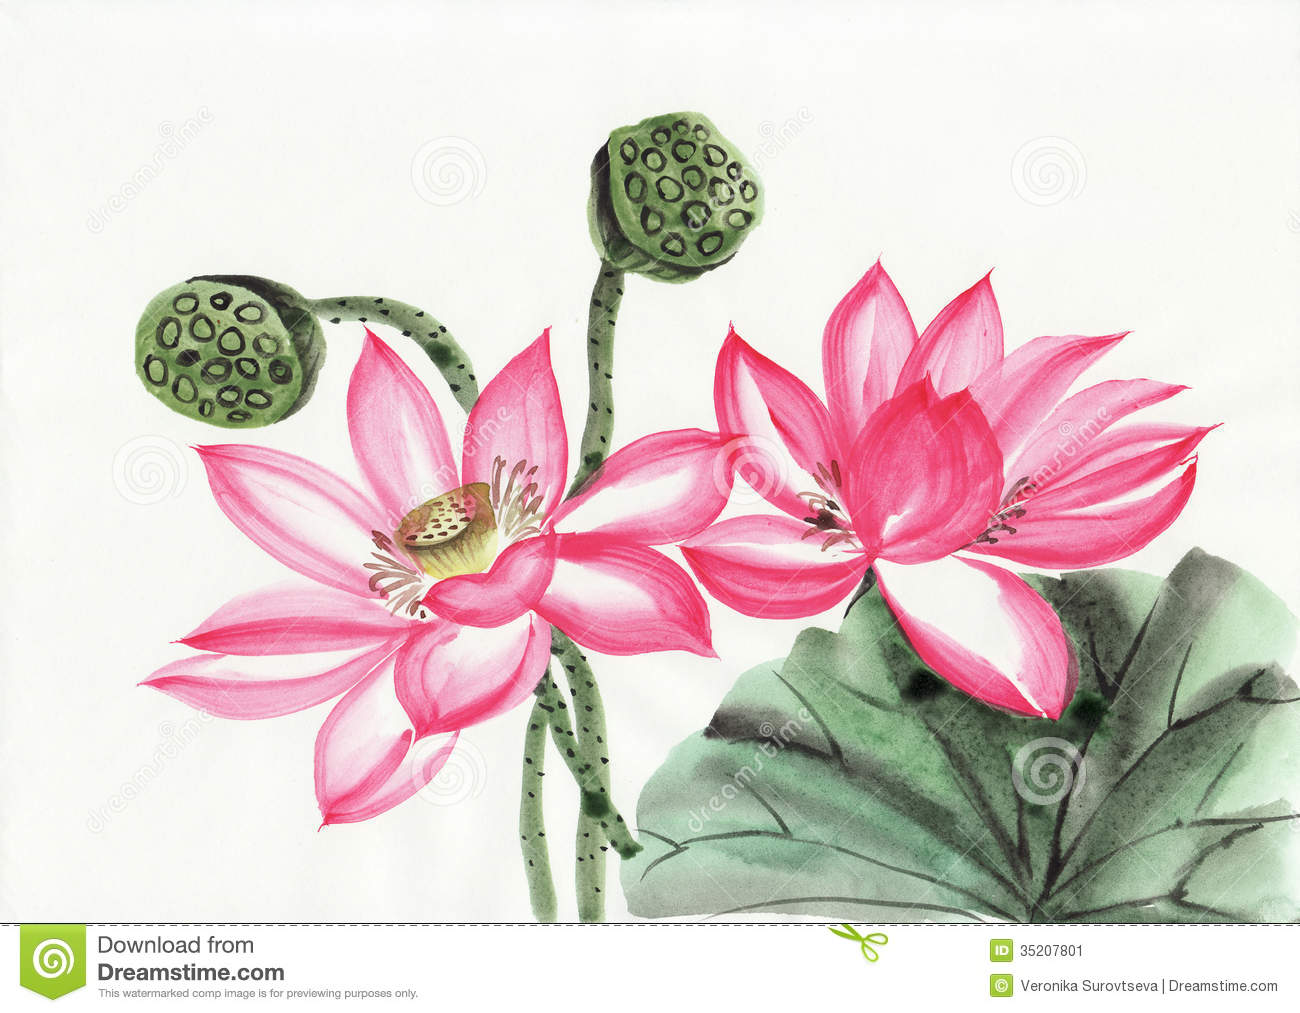 Watercolor painting of lotus flower stock illustration watercolor painting of lotus flower izmirmasajfo